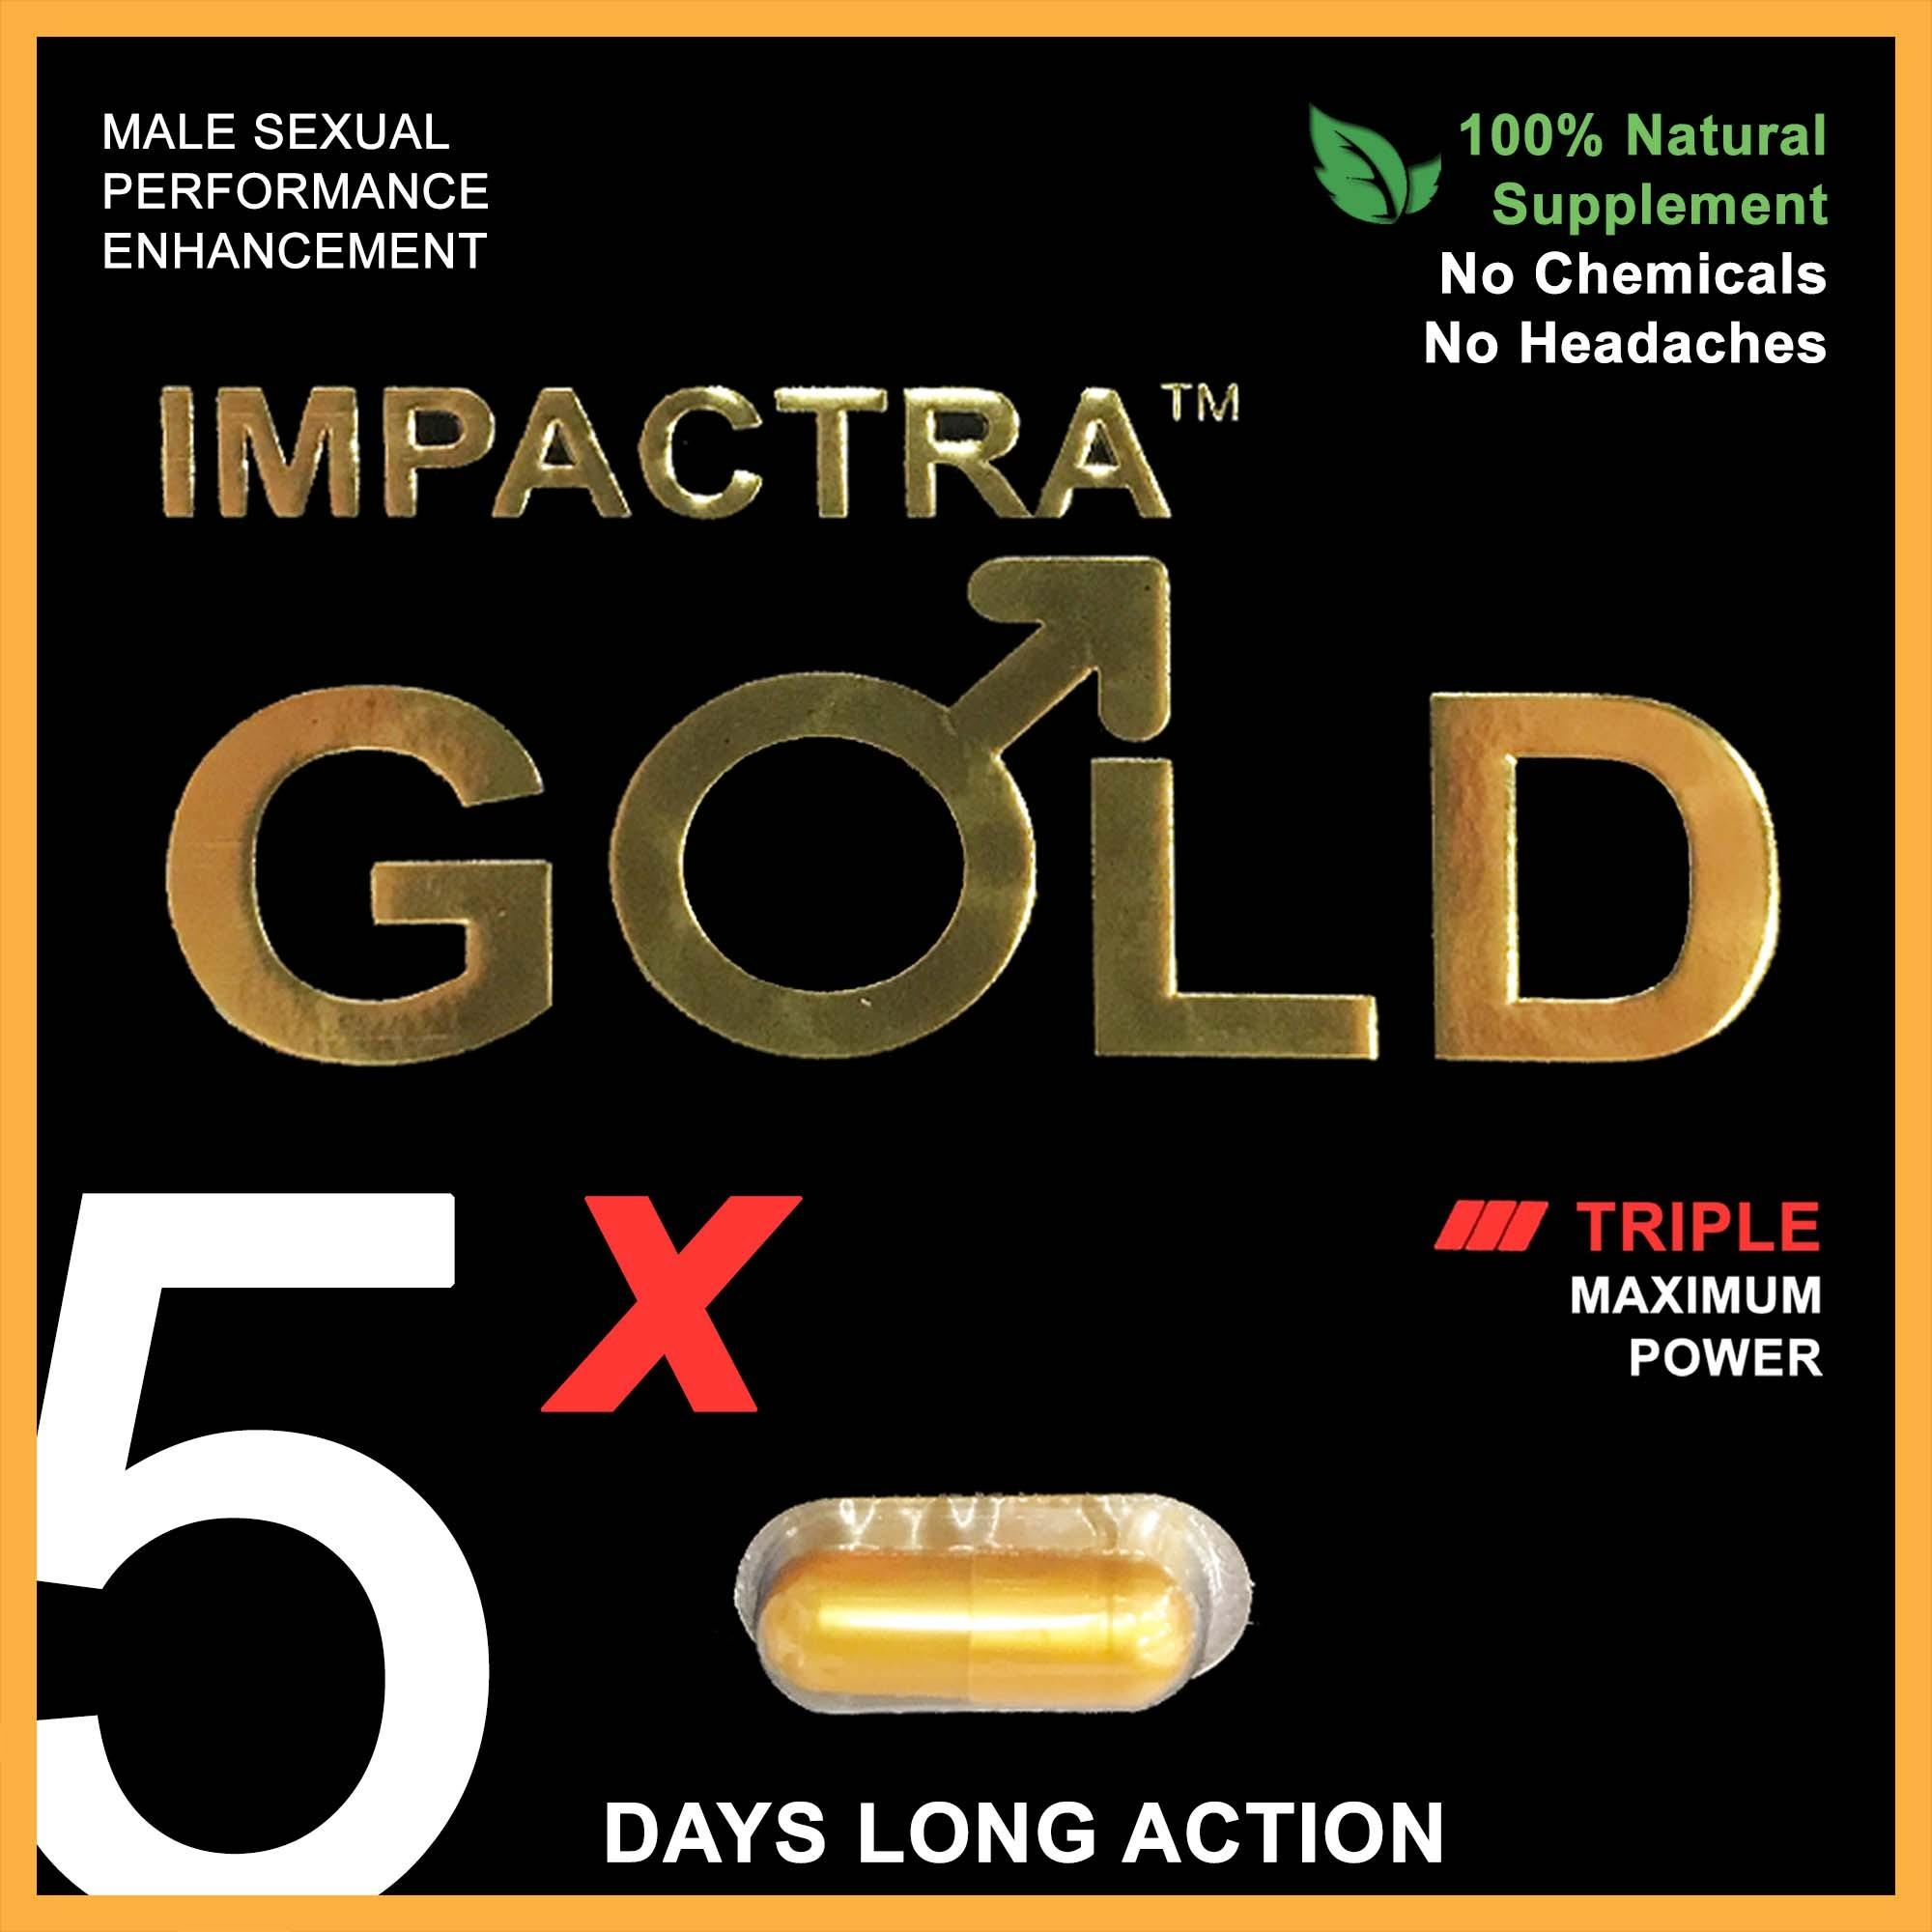 Buy Impactra Gold 5X 100 Natural Sexual Enhancement Tongkat Ali One Capsule 5 Days Long Action